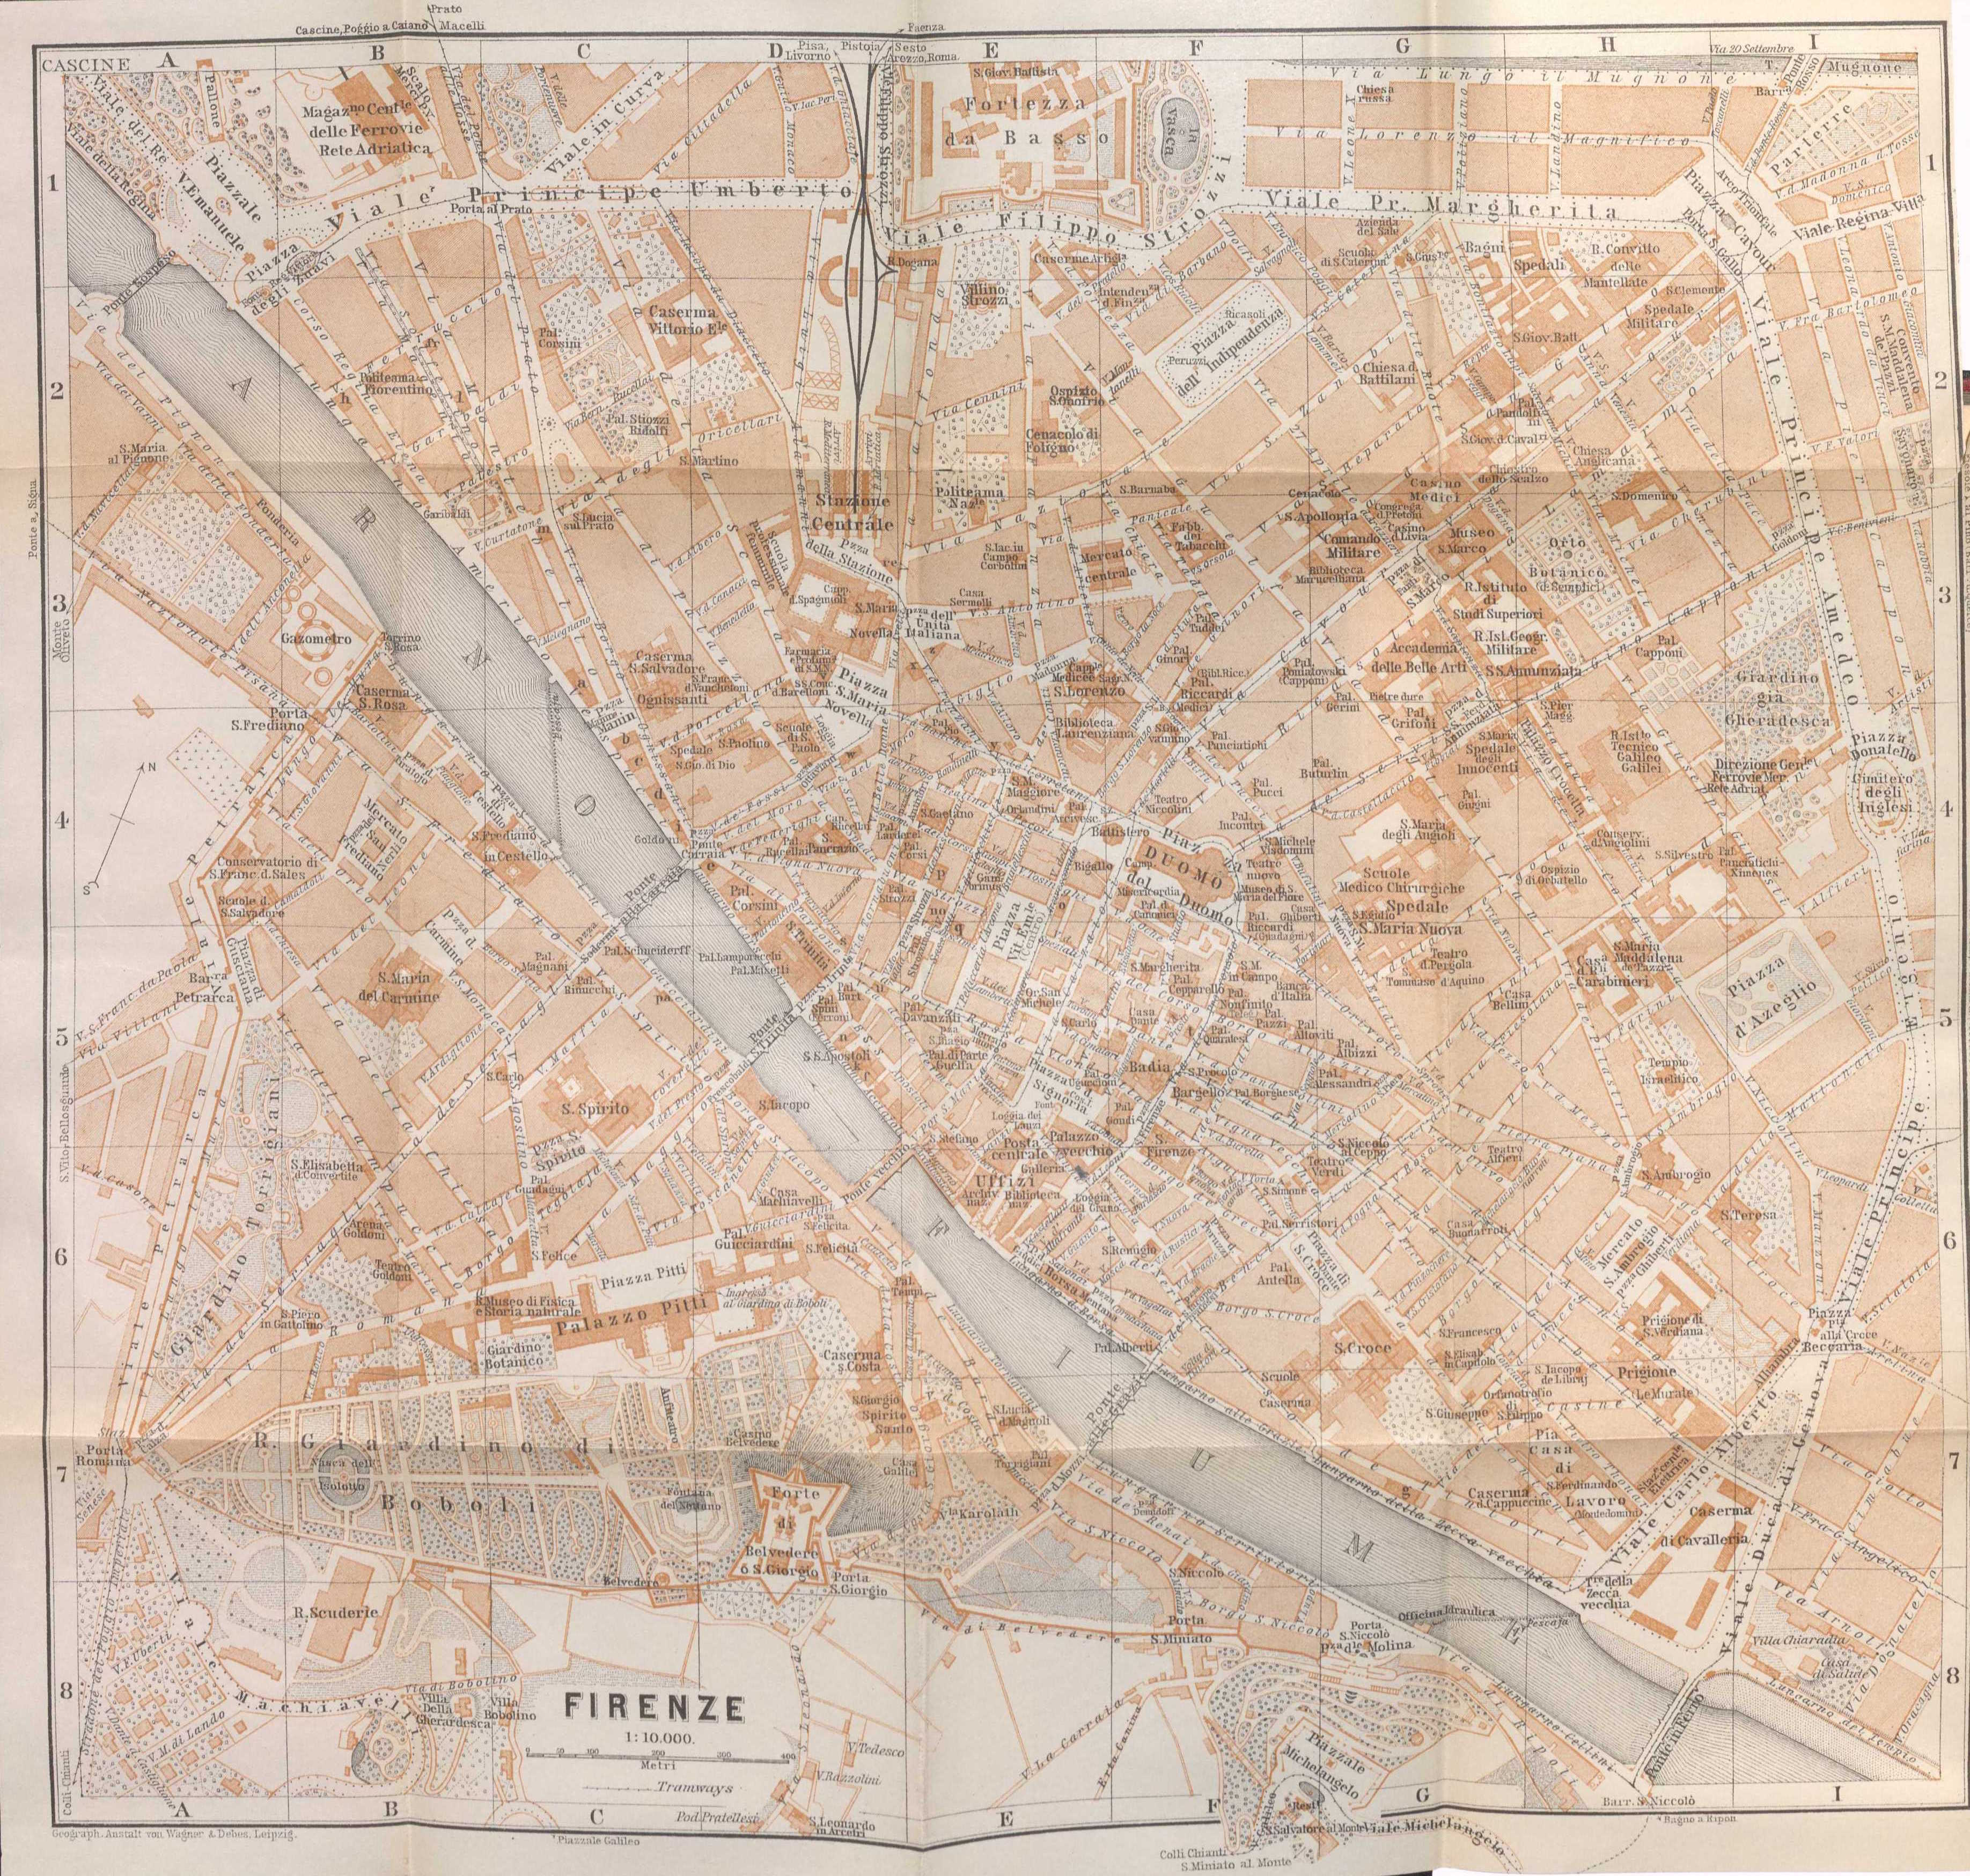 Baedeker map of Florence 1906